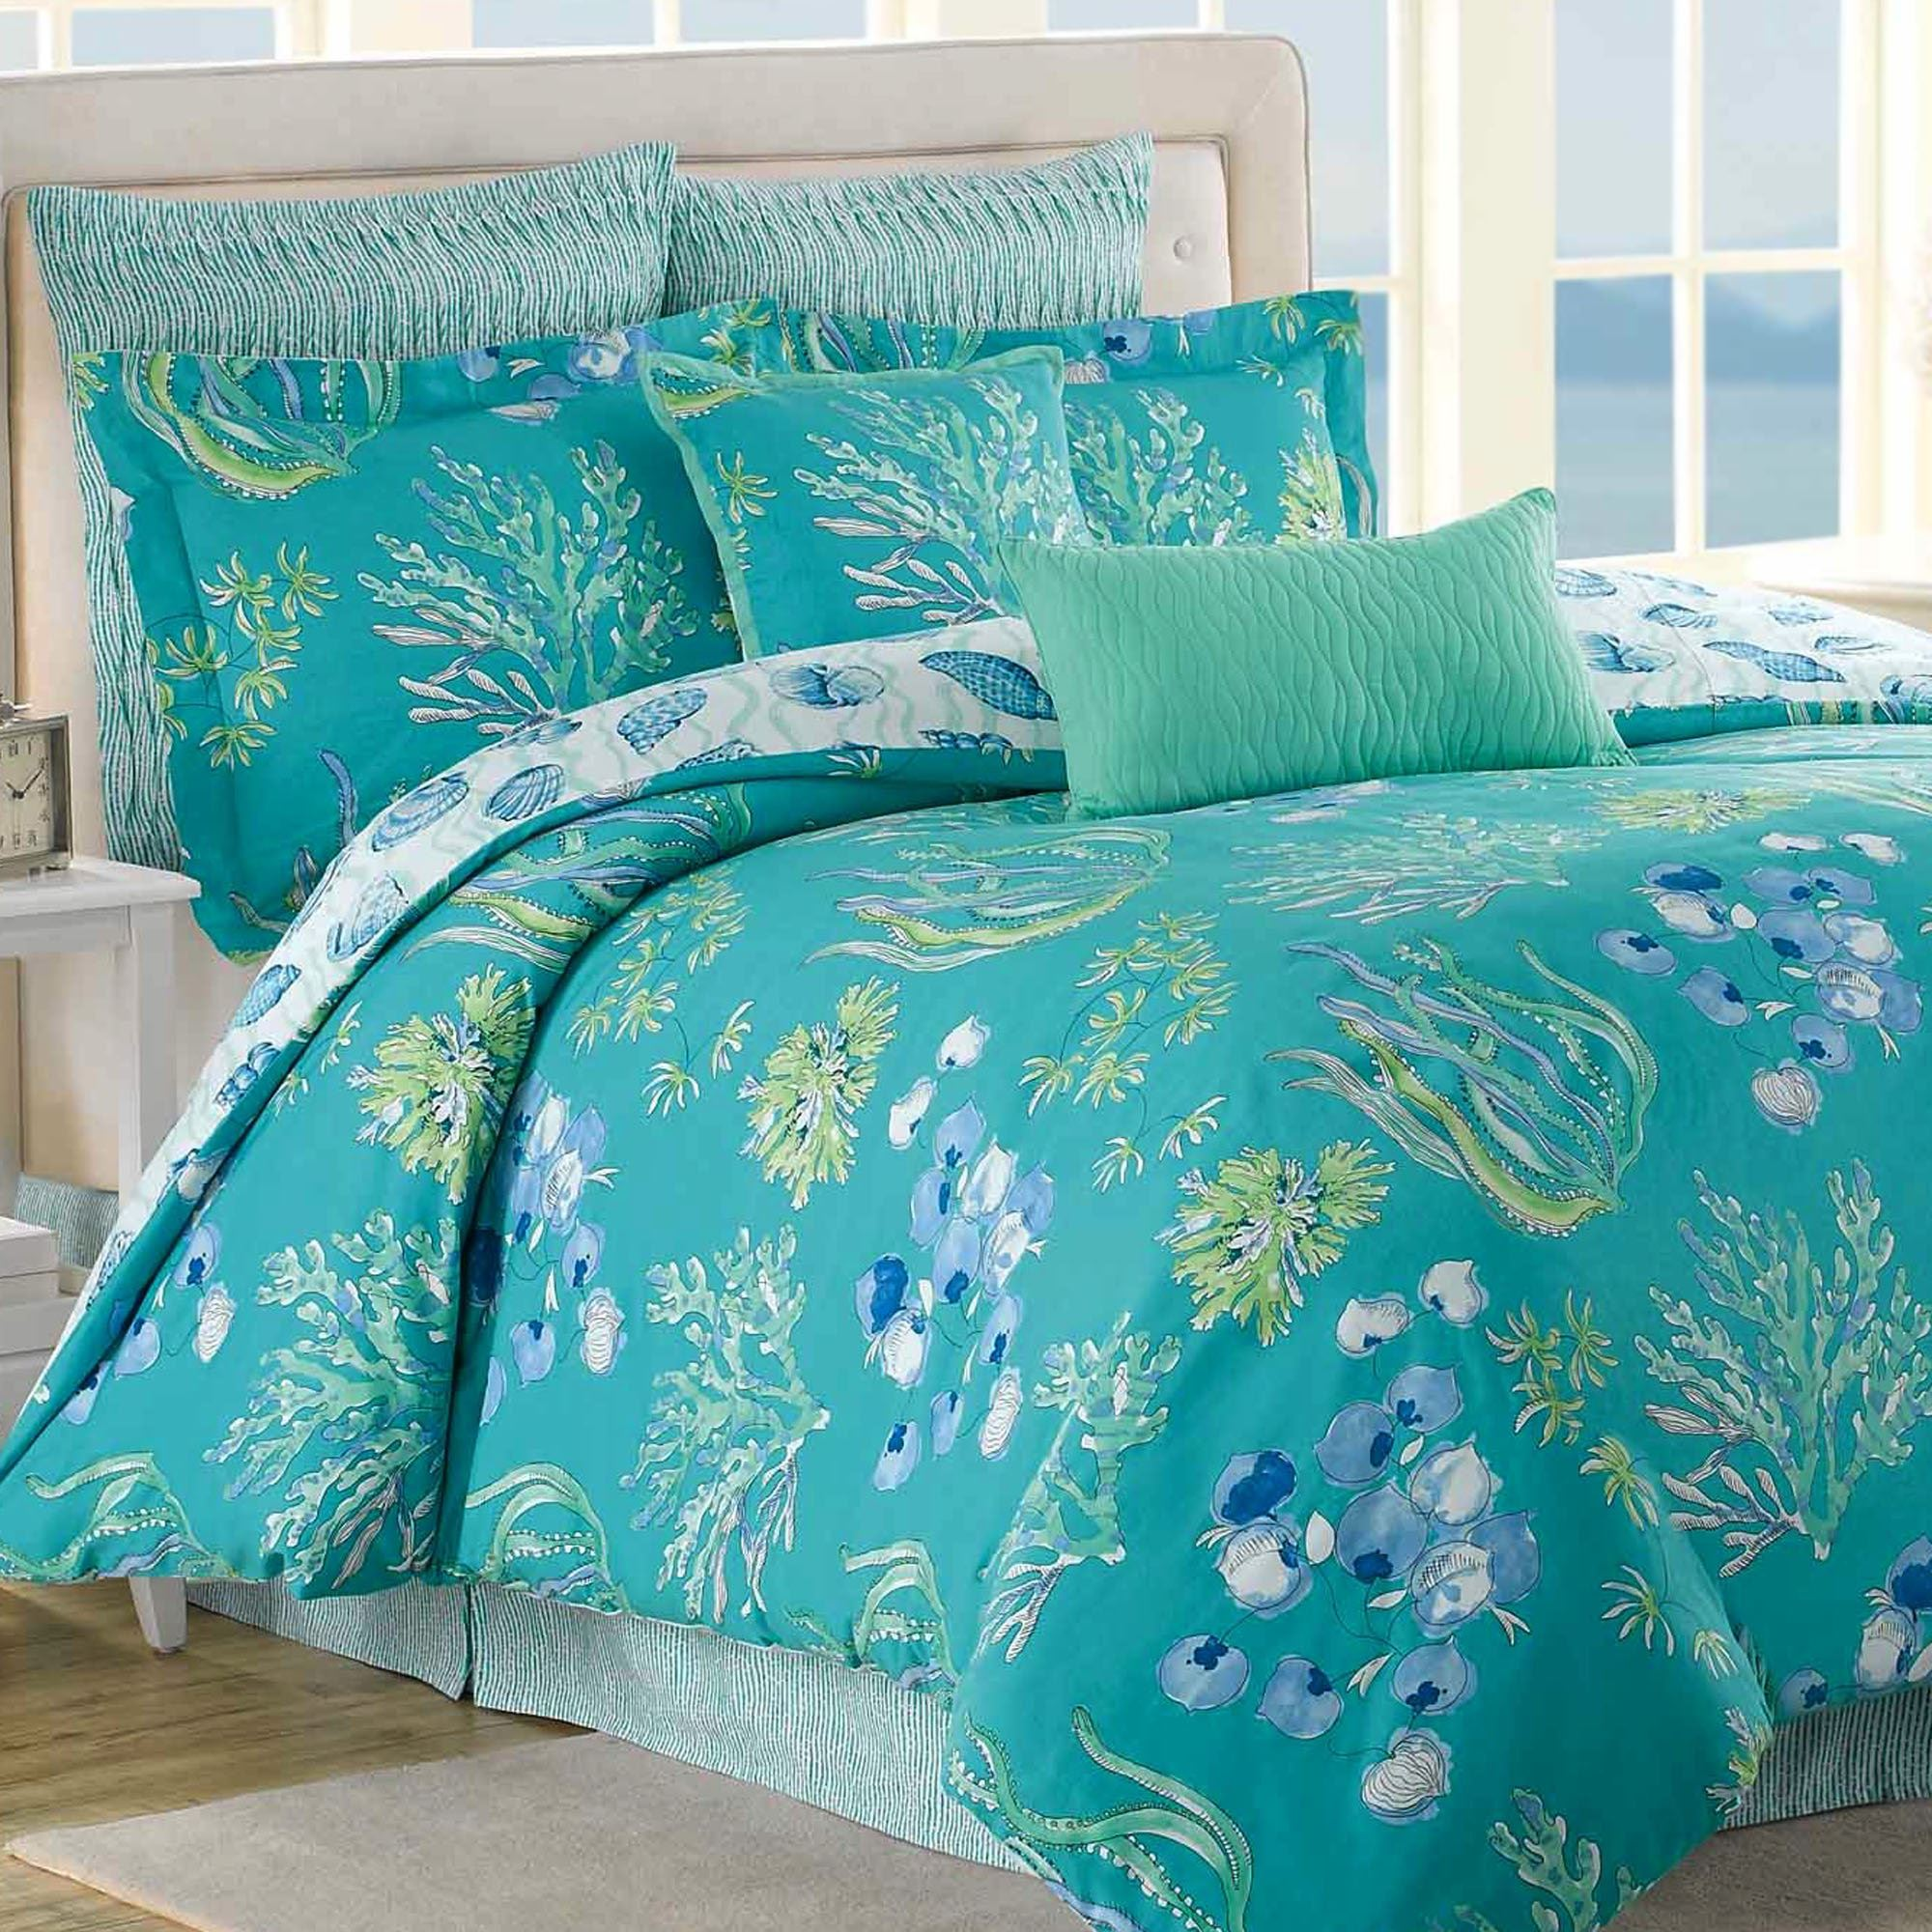 ... Comforter Bed Set Turquoise. Touch To Zoom